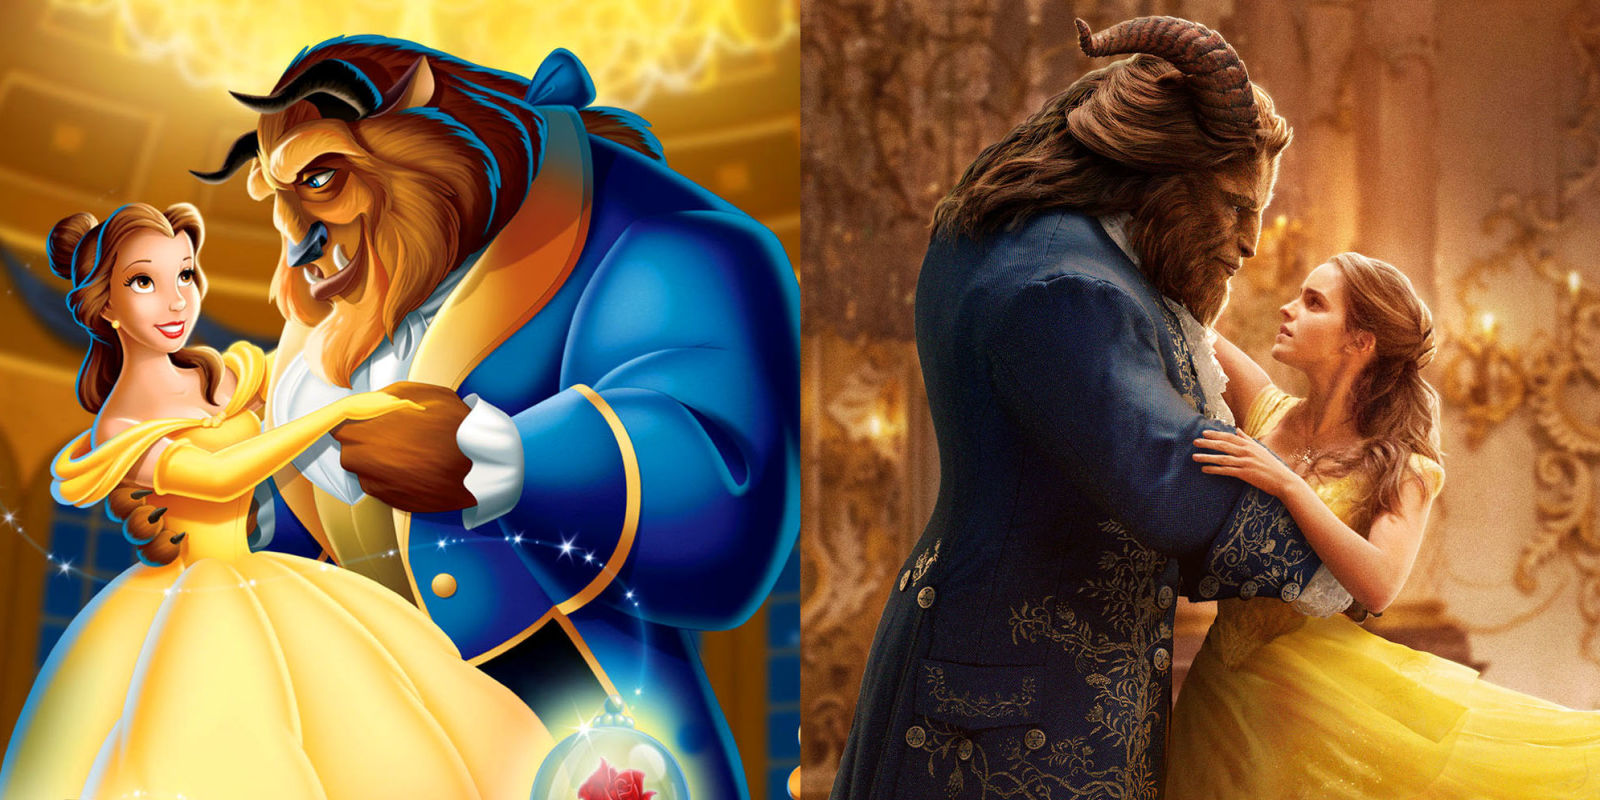 21 Biggest Differences In New Beauty And The Beast